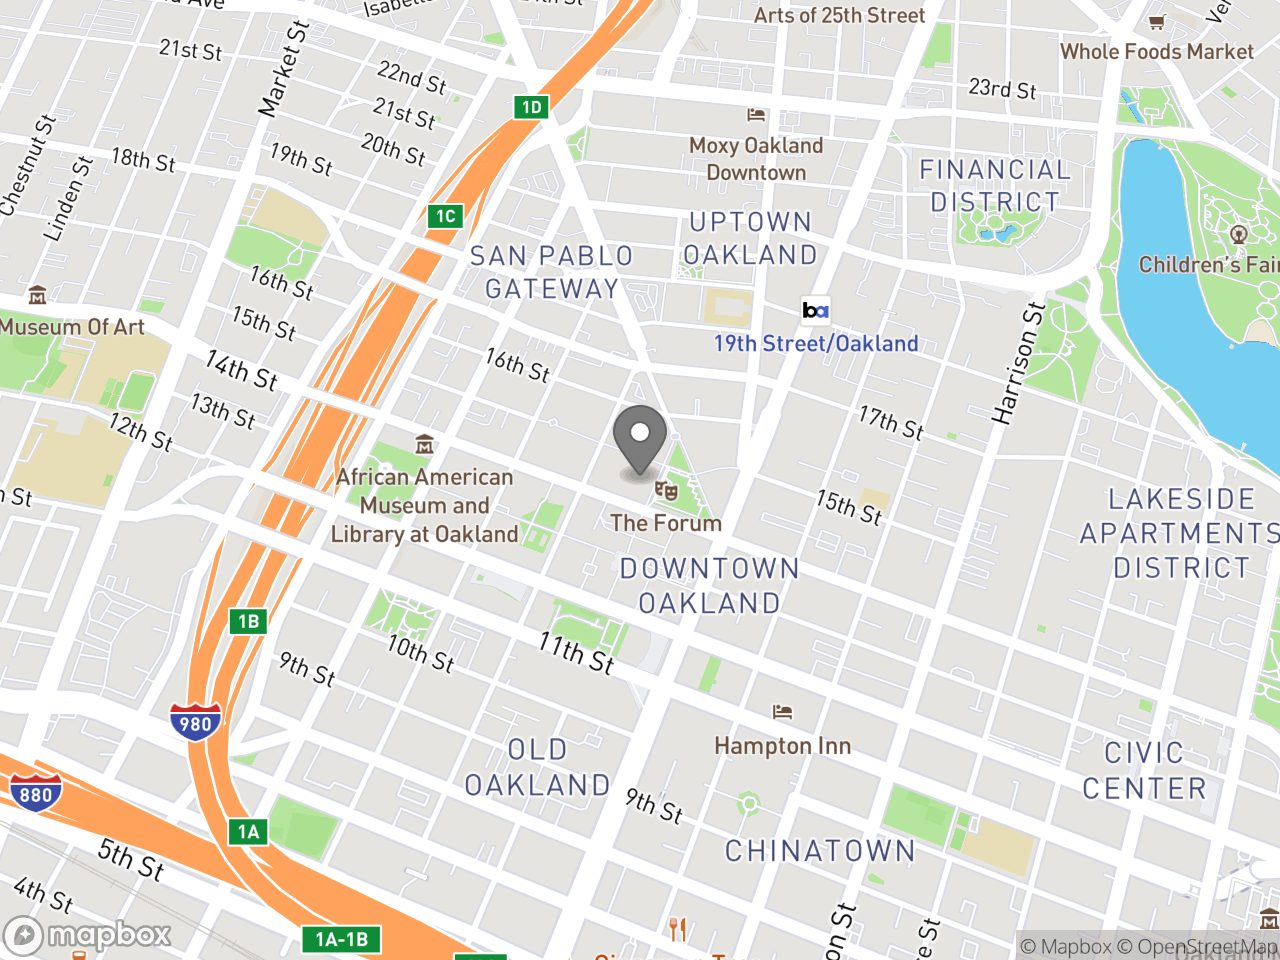 Map image for I-Bond Committee Meeting, located at 1 Frank H Ogawa Plaza in Oakland, CA 94612